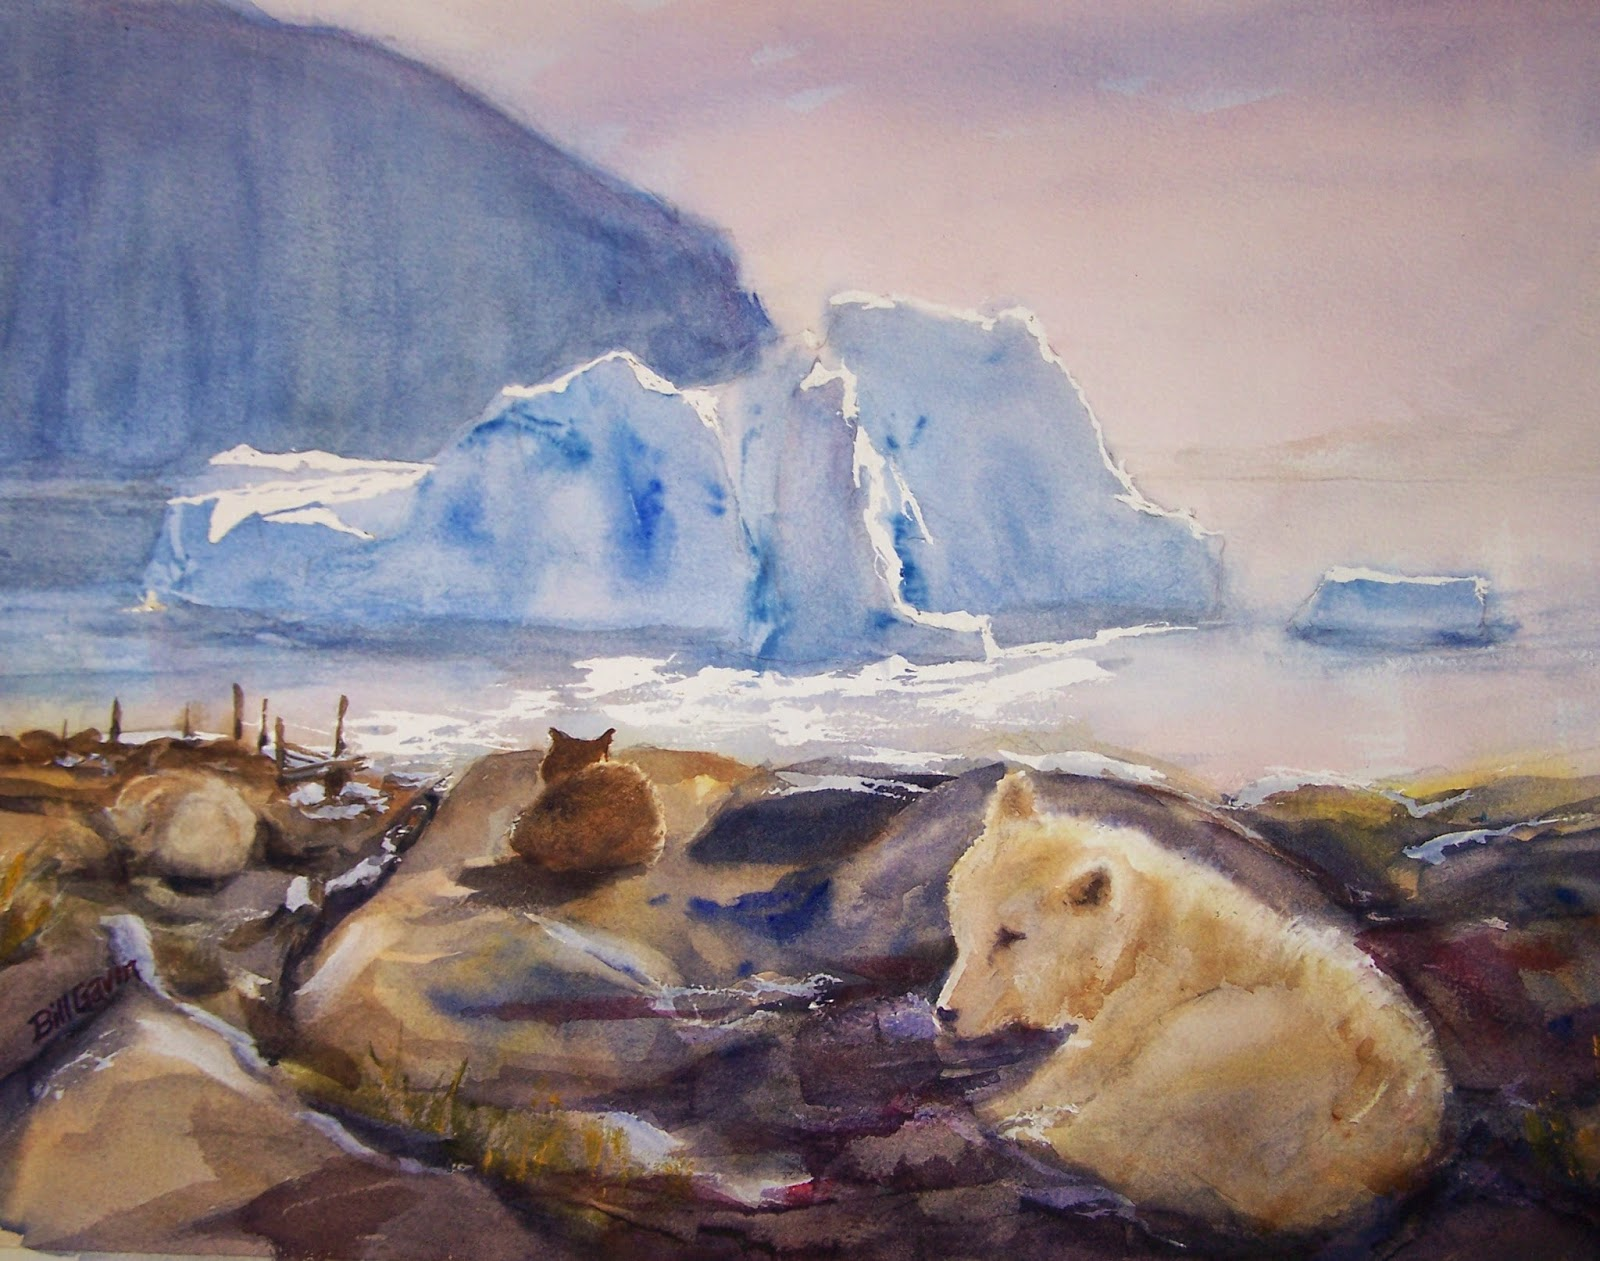 http://paintingsadayorsoforsale.blogspot.com/2015/04/greenland-transparent-watercolor-16-x.html